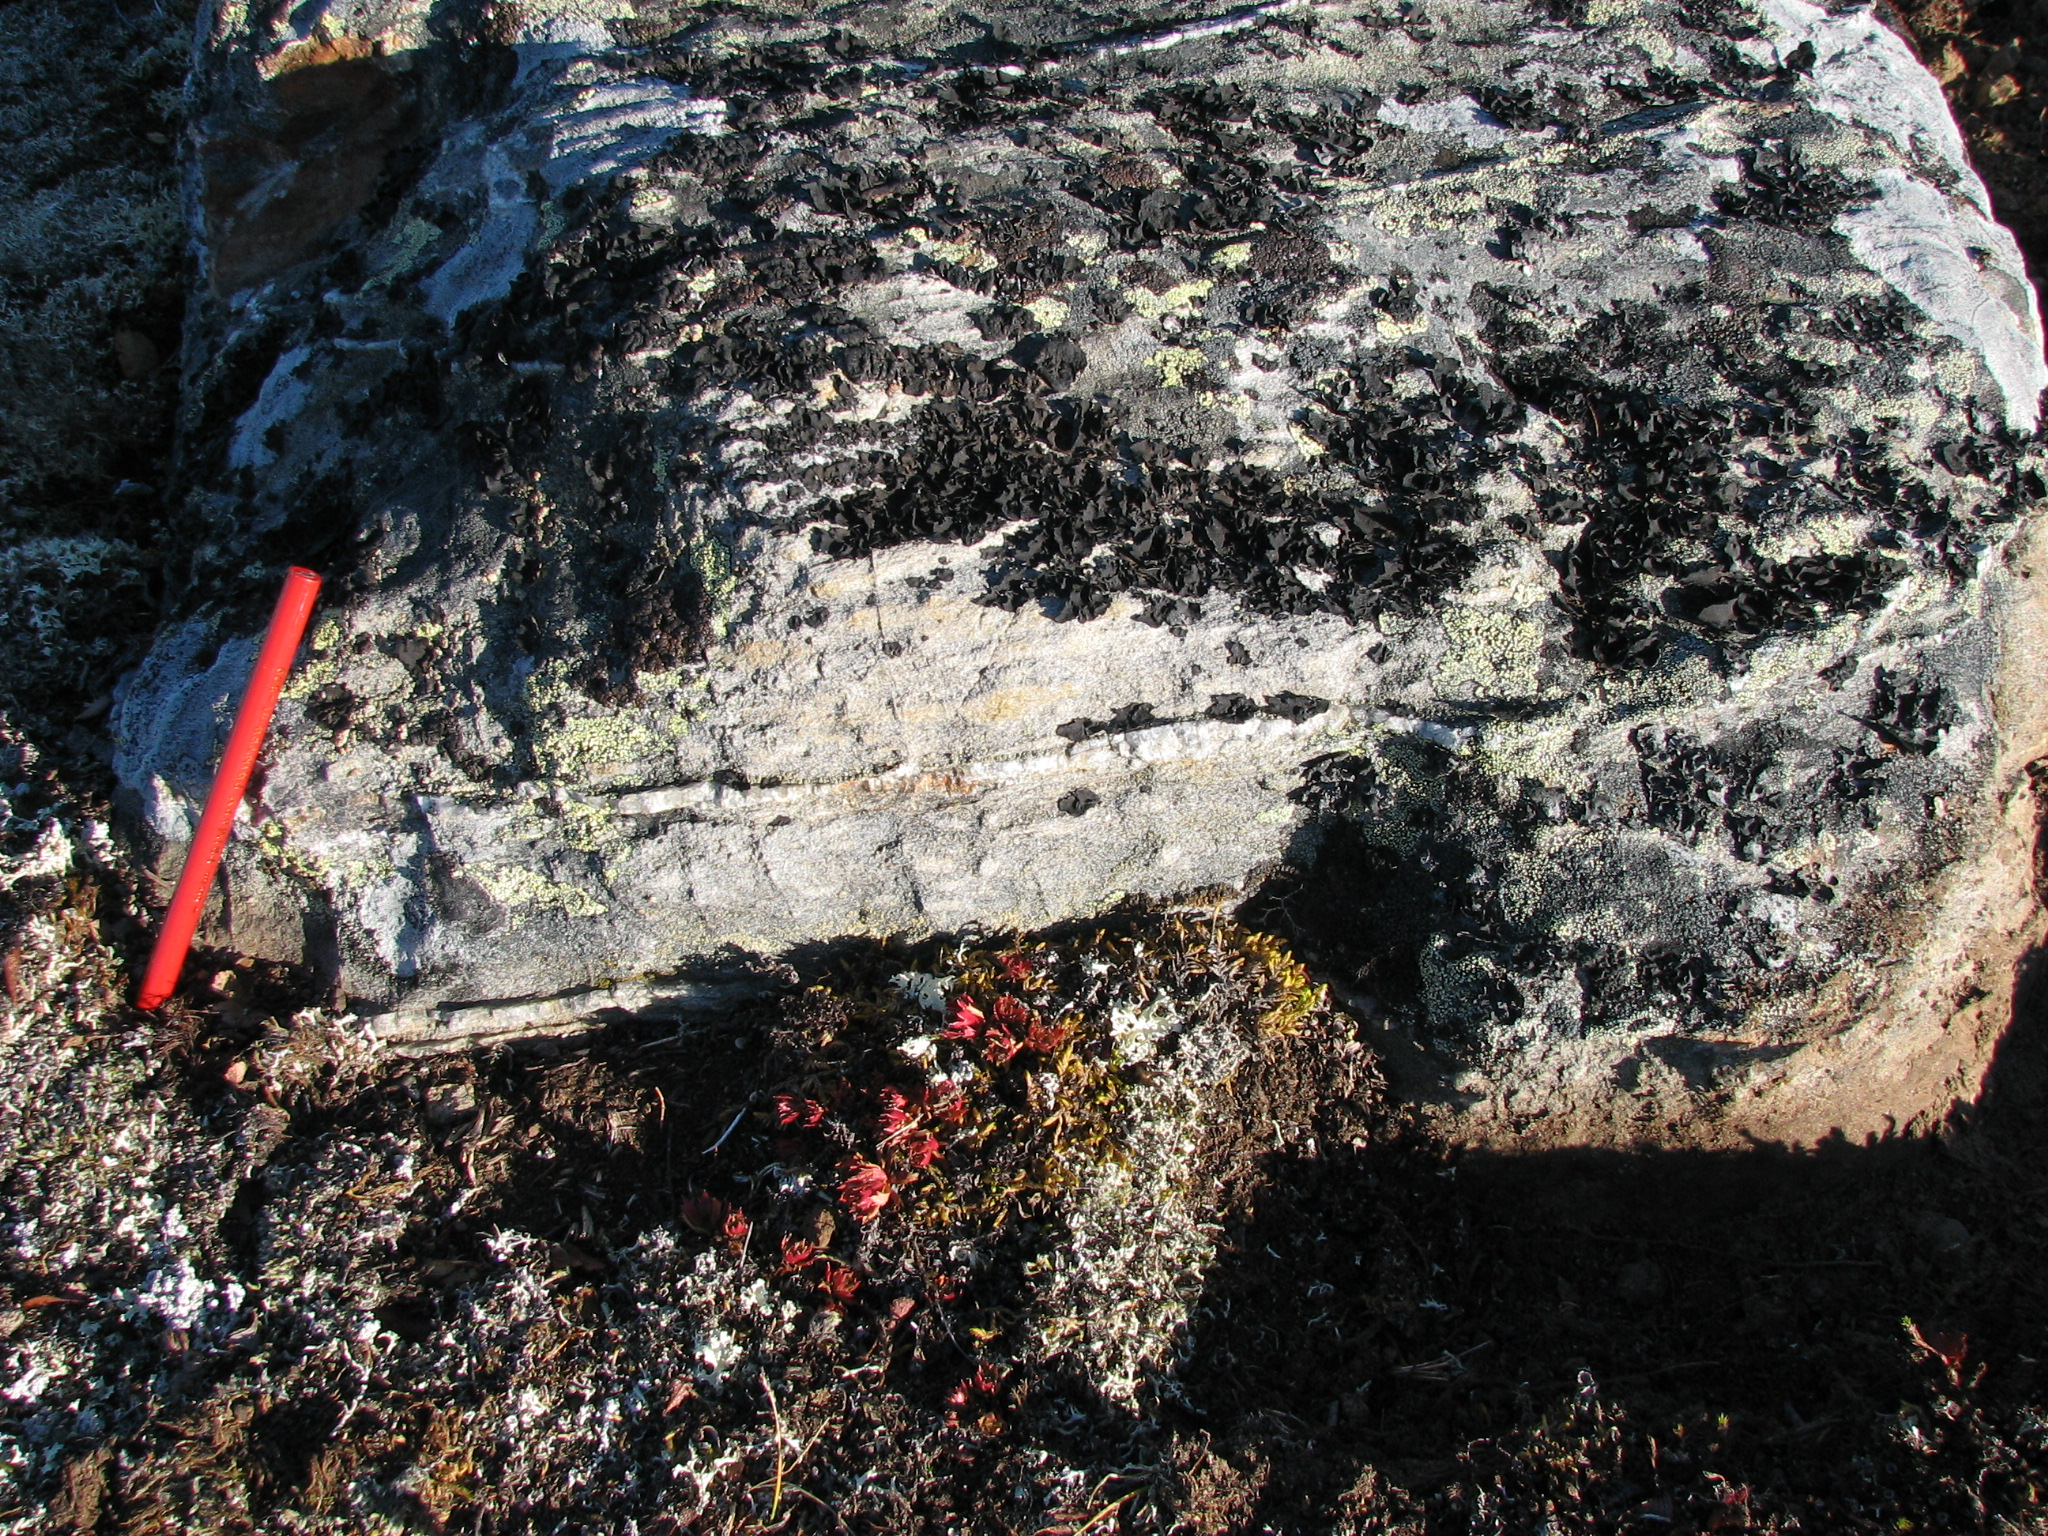 Yukon: Rock covered in vein material